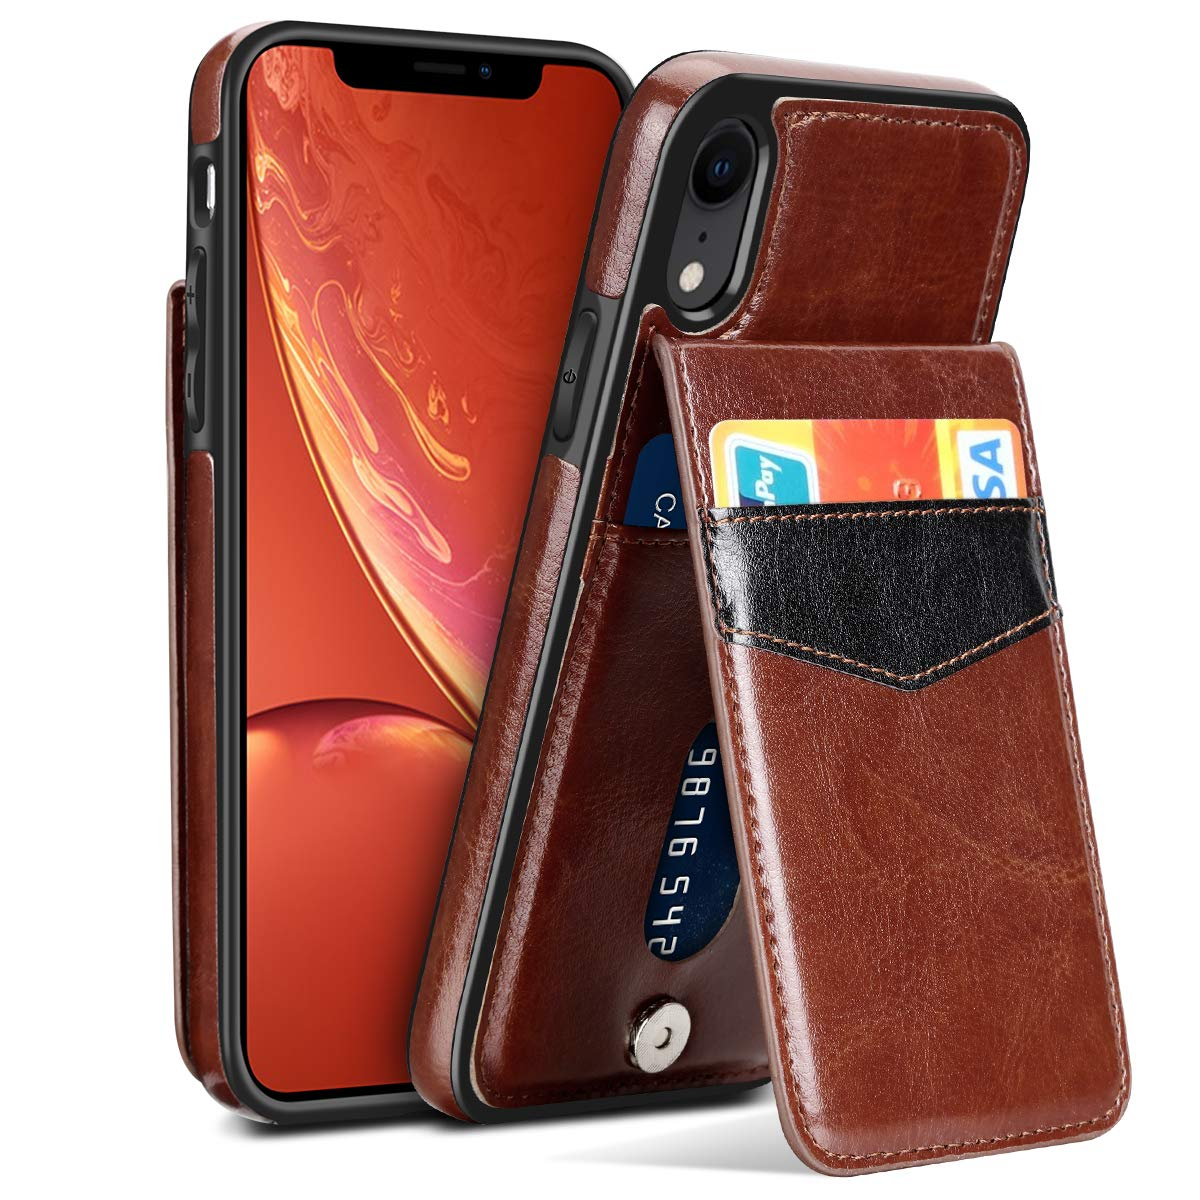 c398ded11469 SAMONPOW Case for iPhone XR Faux Leather Back Flip iPhone XR Wallet Case  with Card Holder ID Credit Debit Card Driver License Slim Fit Protective ...